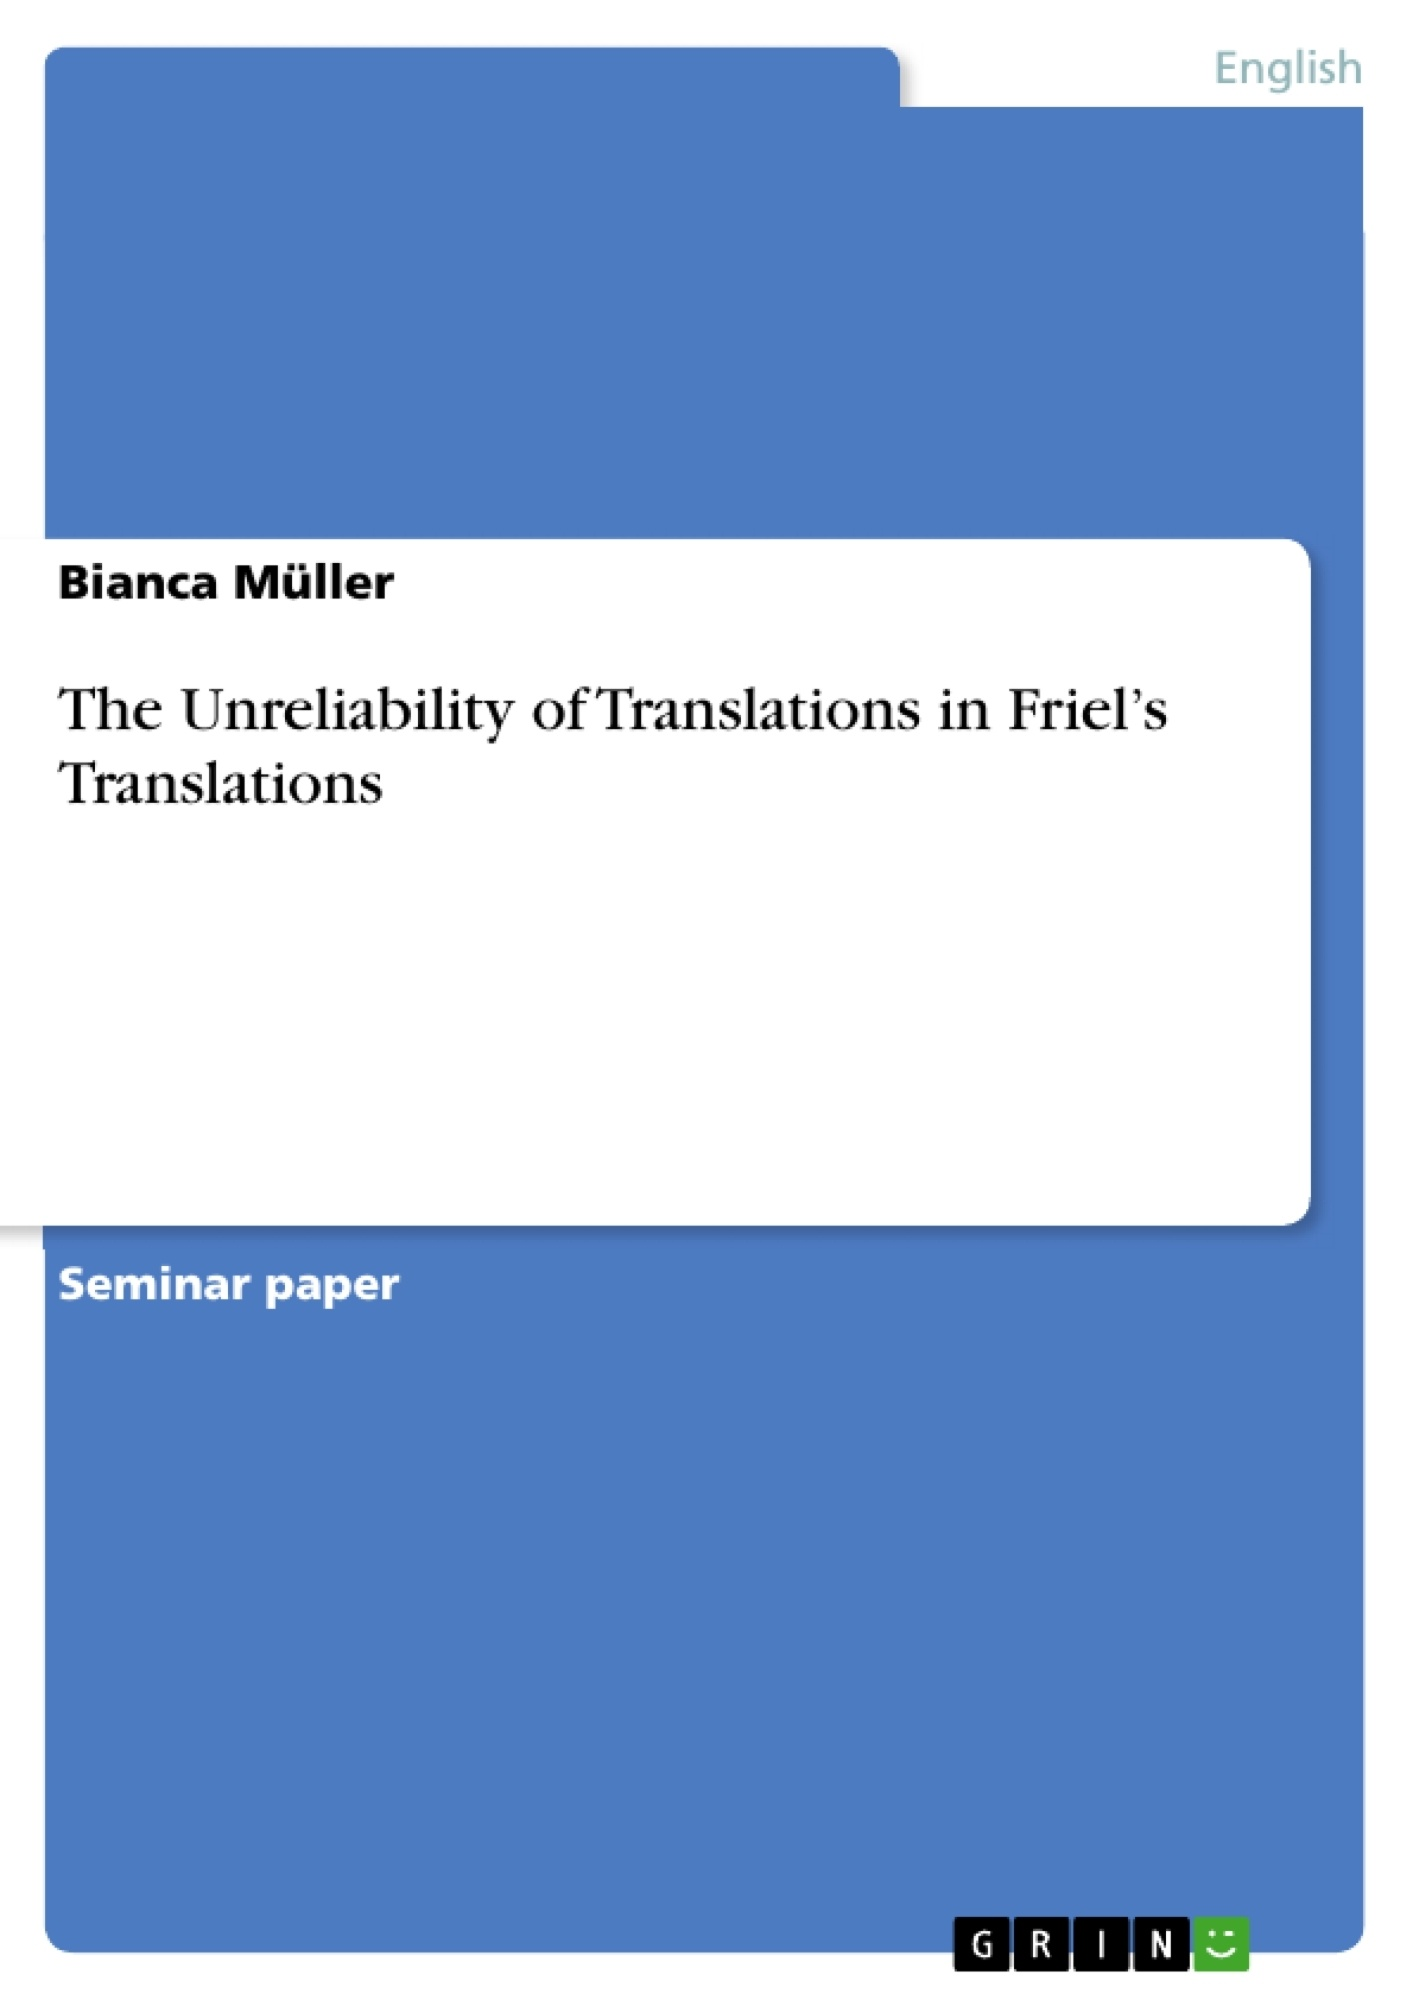 Title: The Unreliability of Translations in Friel's Translations